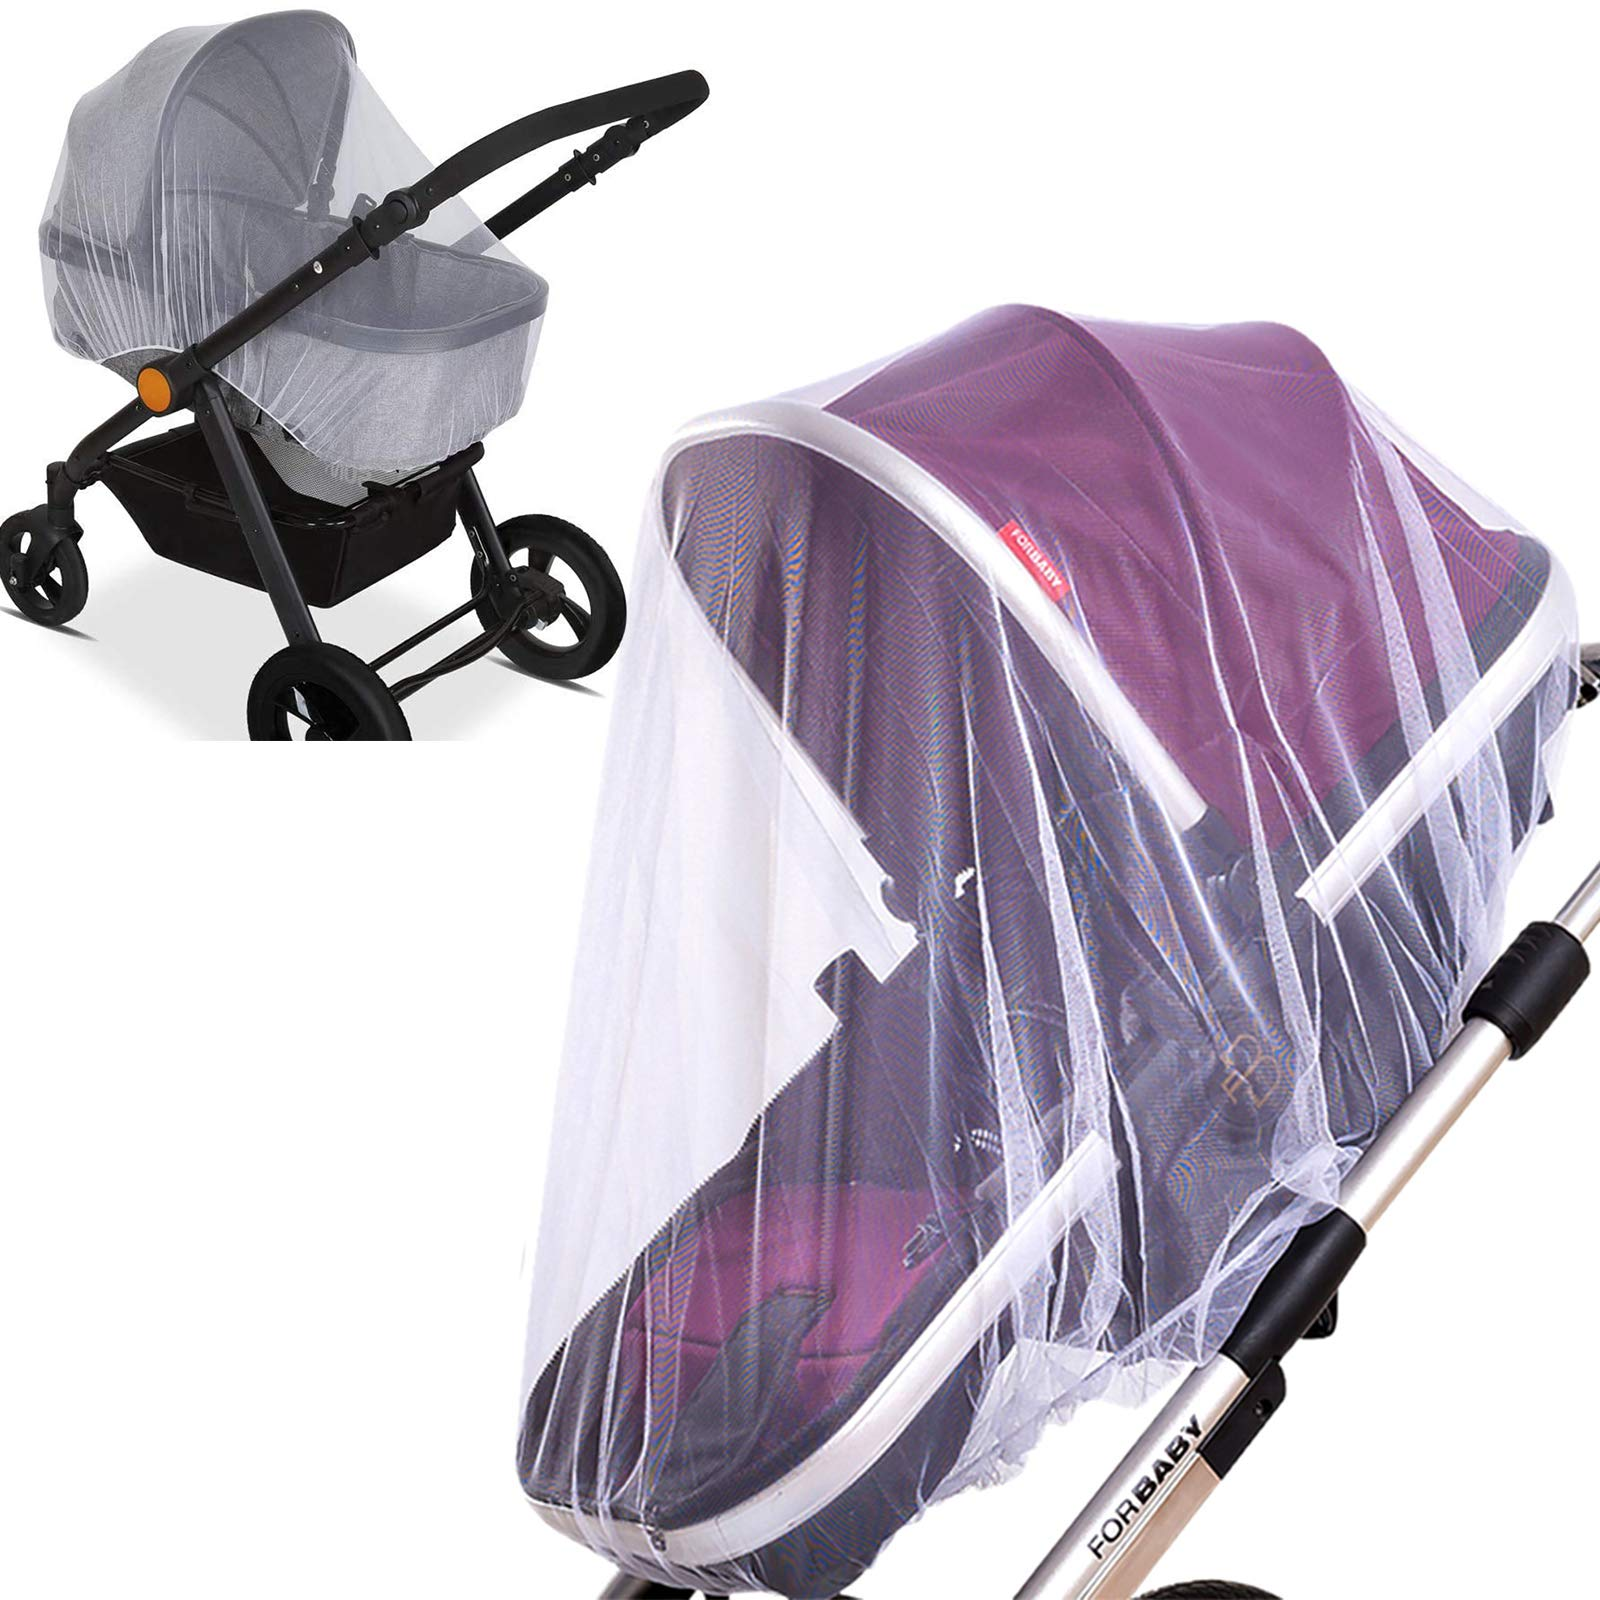 Cradles White Encrypted Stroller Mosquito Net Full Cover HJQJ Stretchable Netting Breathable Folding Dual-Use Zipper Mesh Mosquito Net for Baby Car seat Cover Mosquito Netting for Stroller